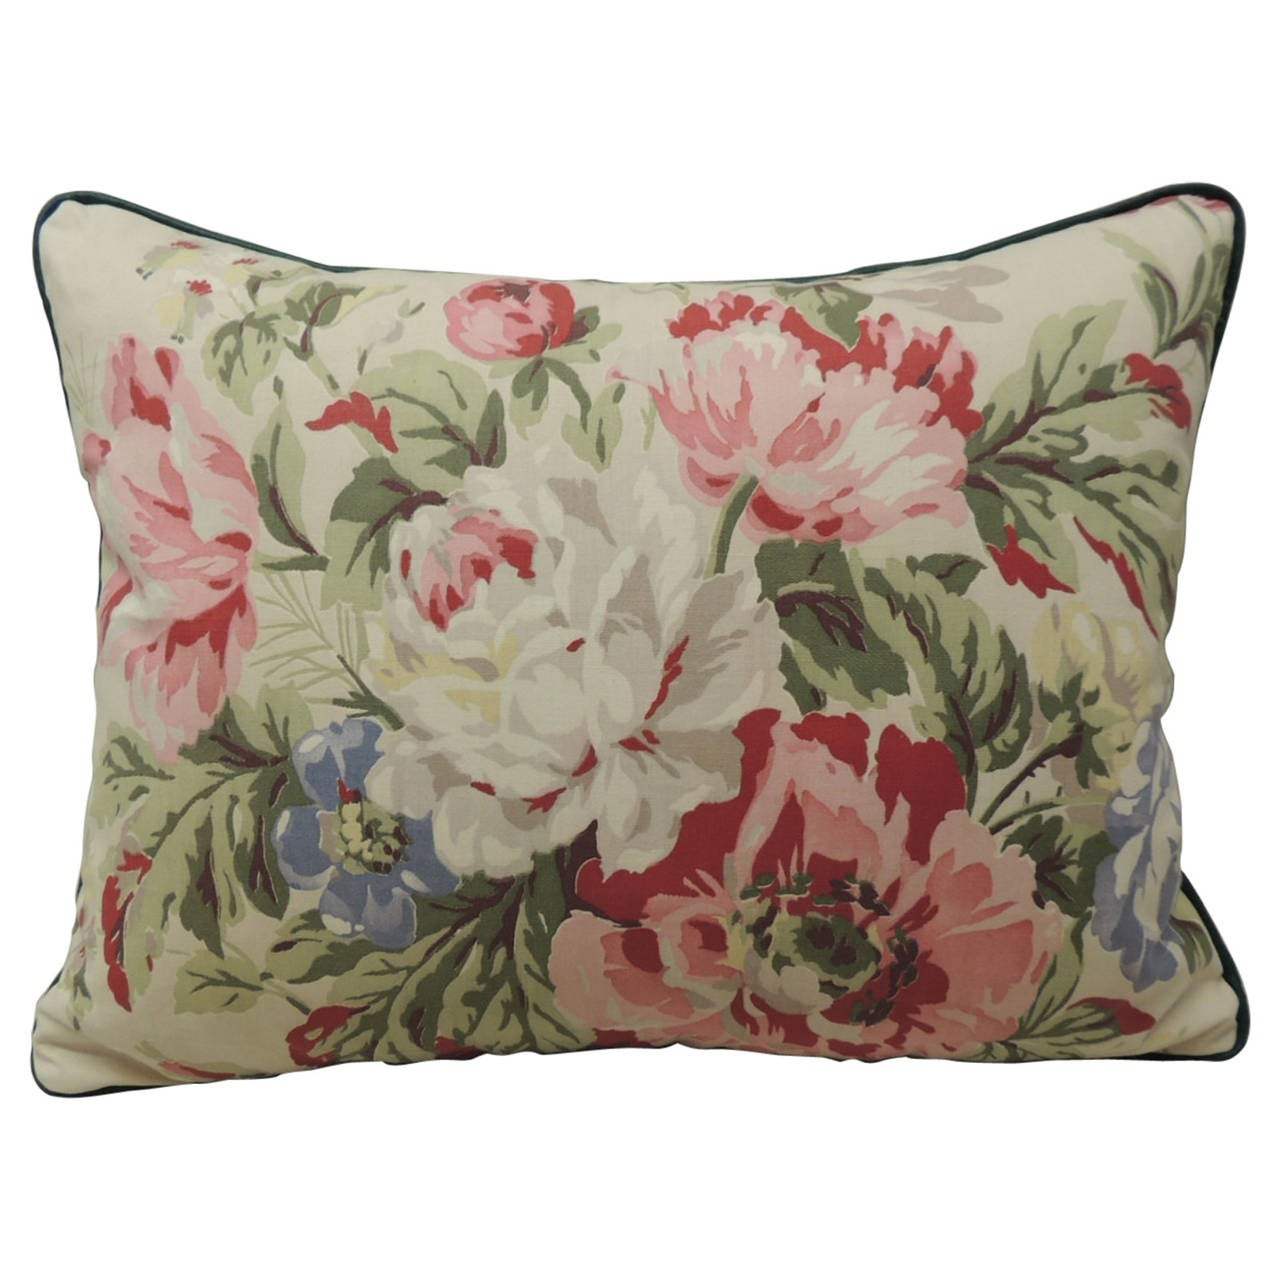 Large Decorative Bolster Pillows : Vintage Parrot Tulips Large Barkcloth Bolster Decorative Pillow For Sale at 1stdibs